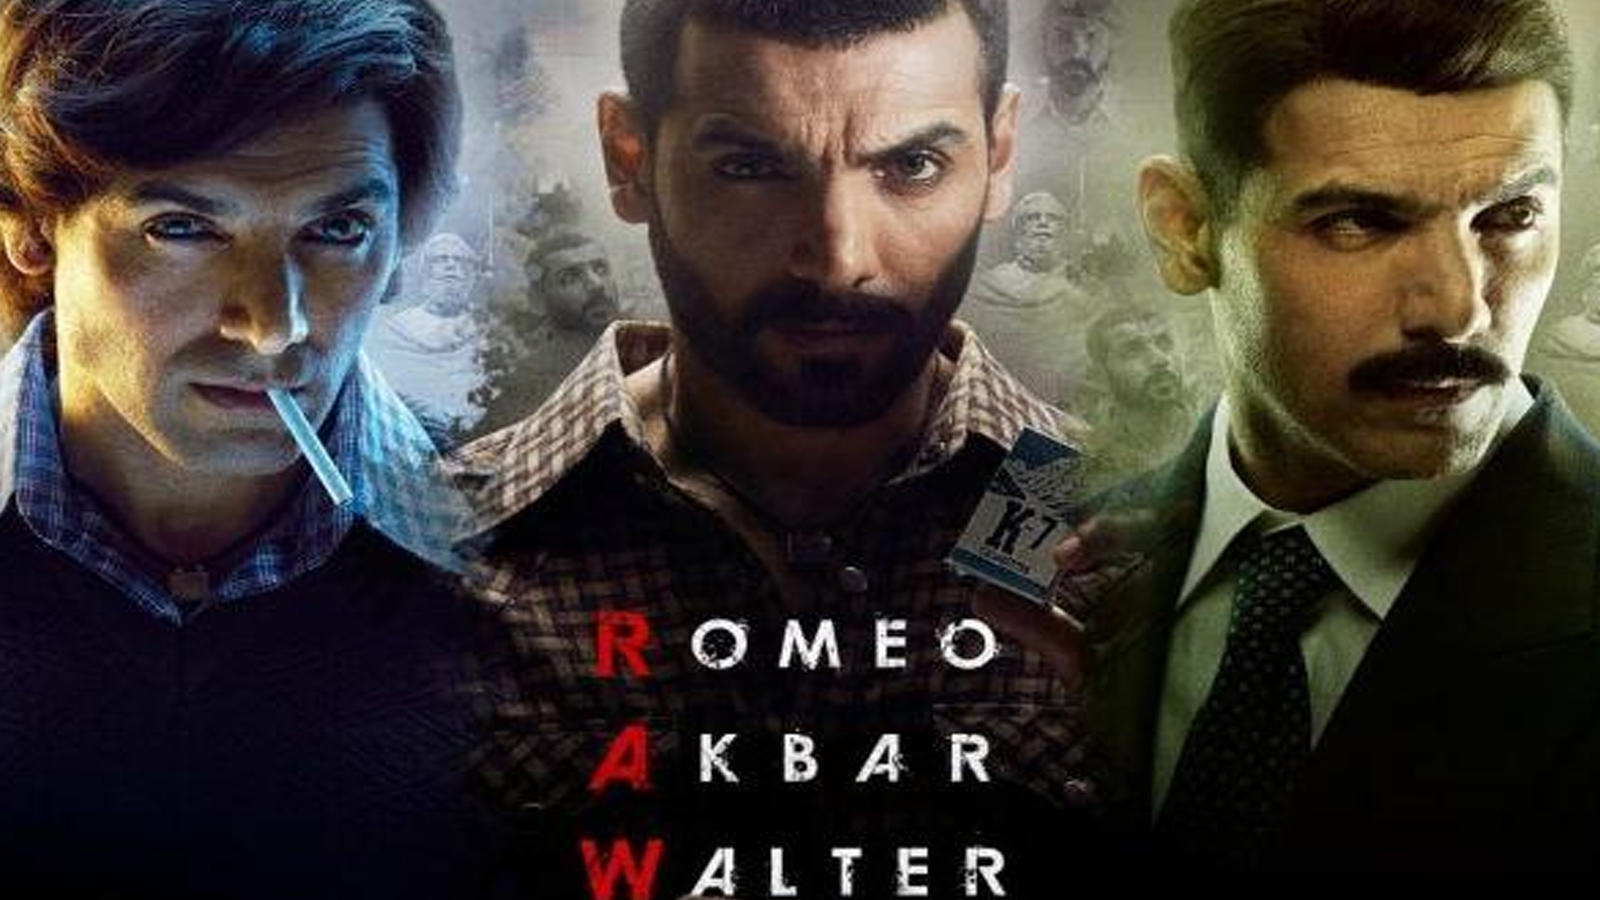 Romeo Akbar Walter: Public review of John Abraham and Mouni Roy starrer